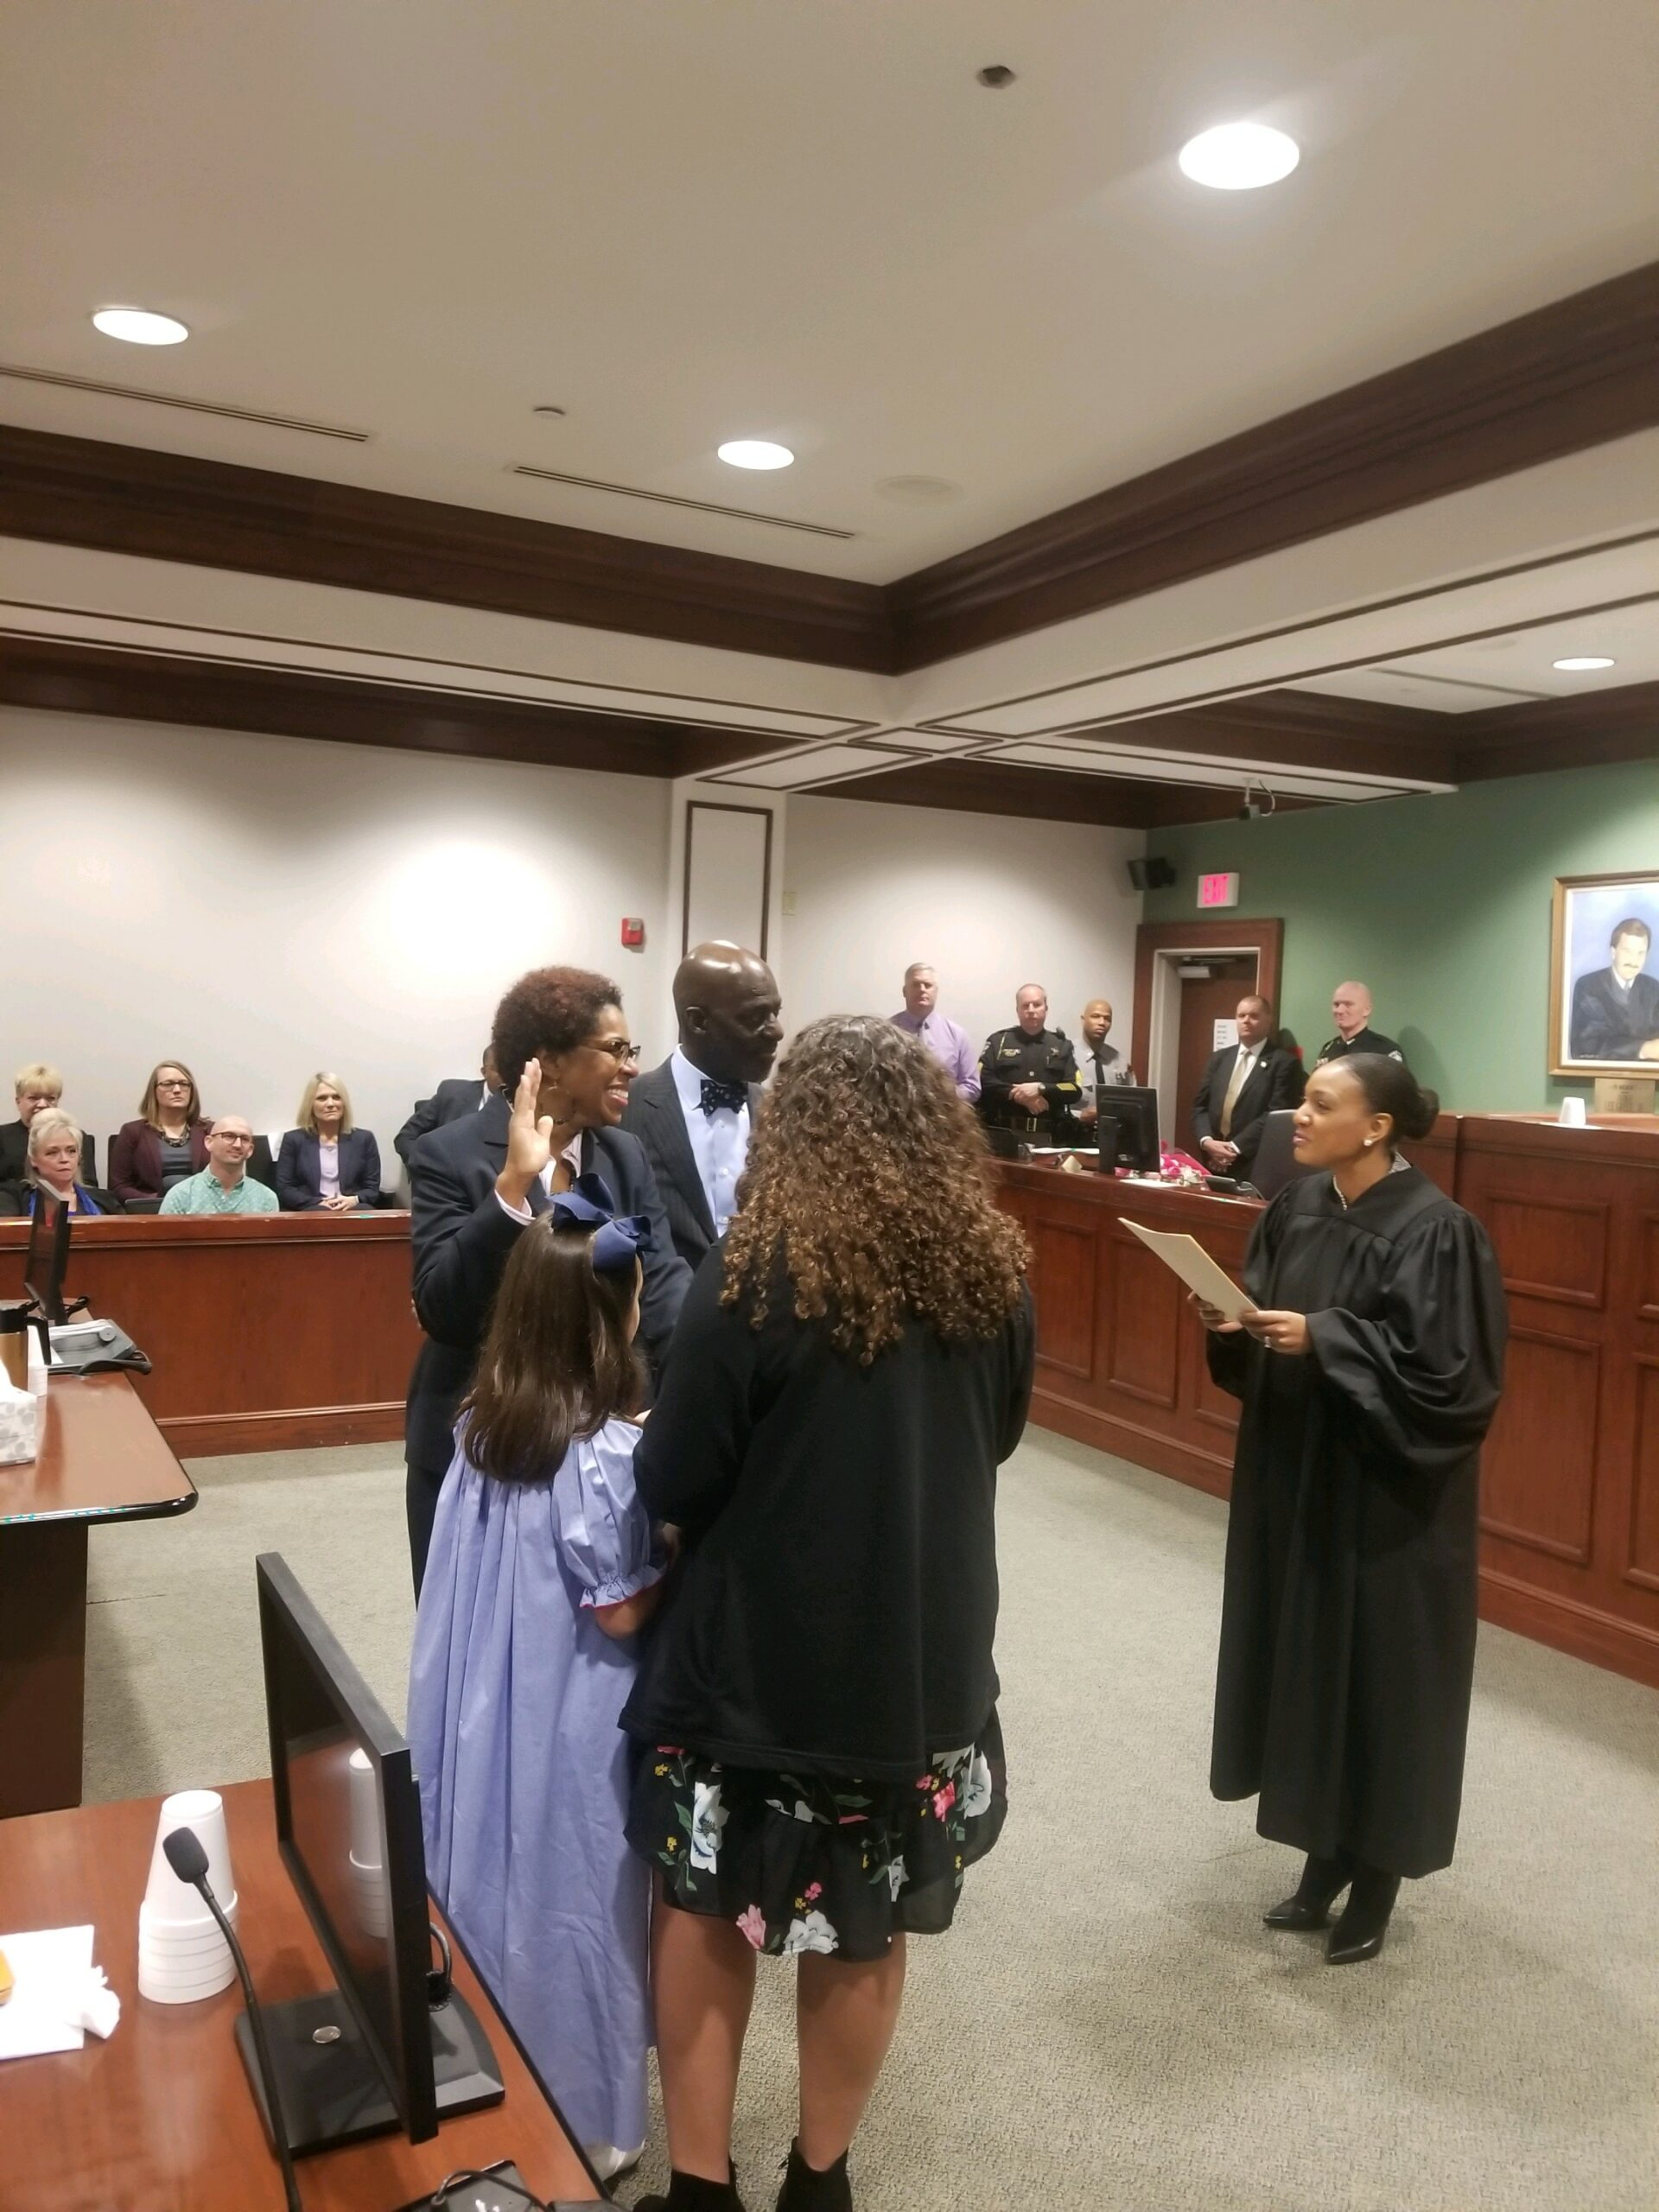 Swearing in Resident Superior Court Judge and Cousin Ola Lewis-Jan. 18, 2019